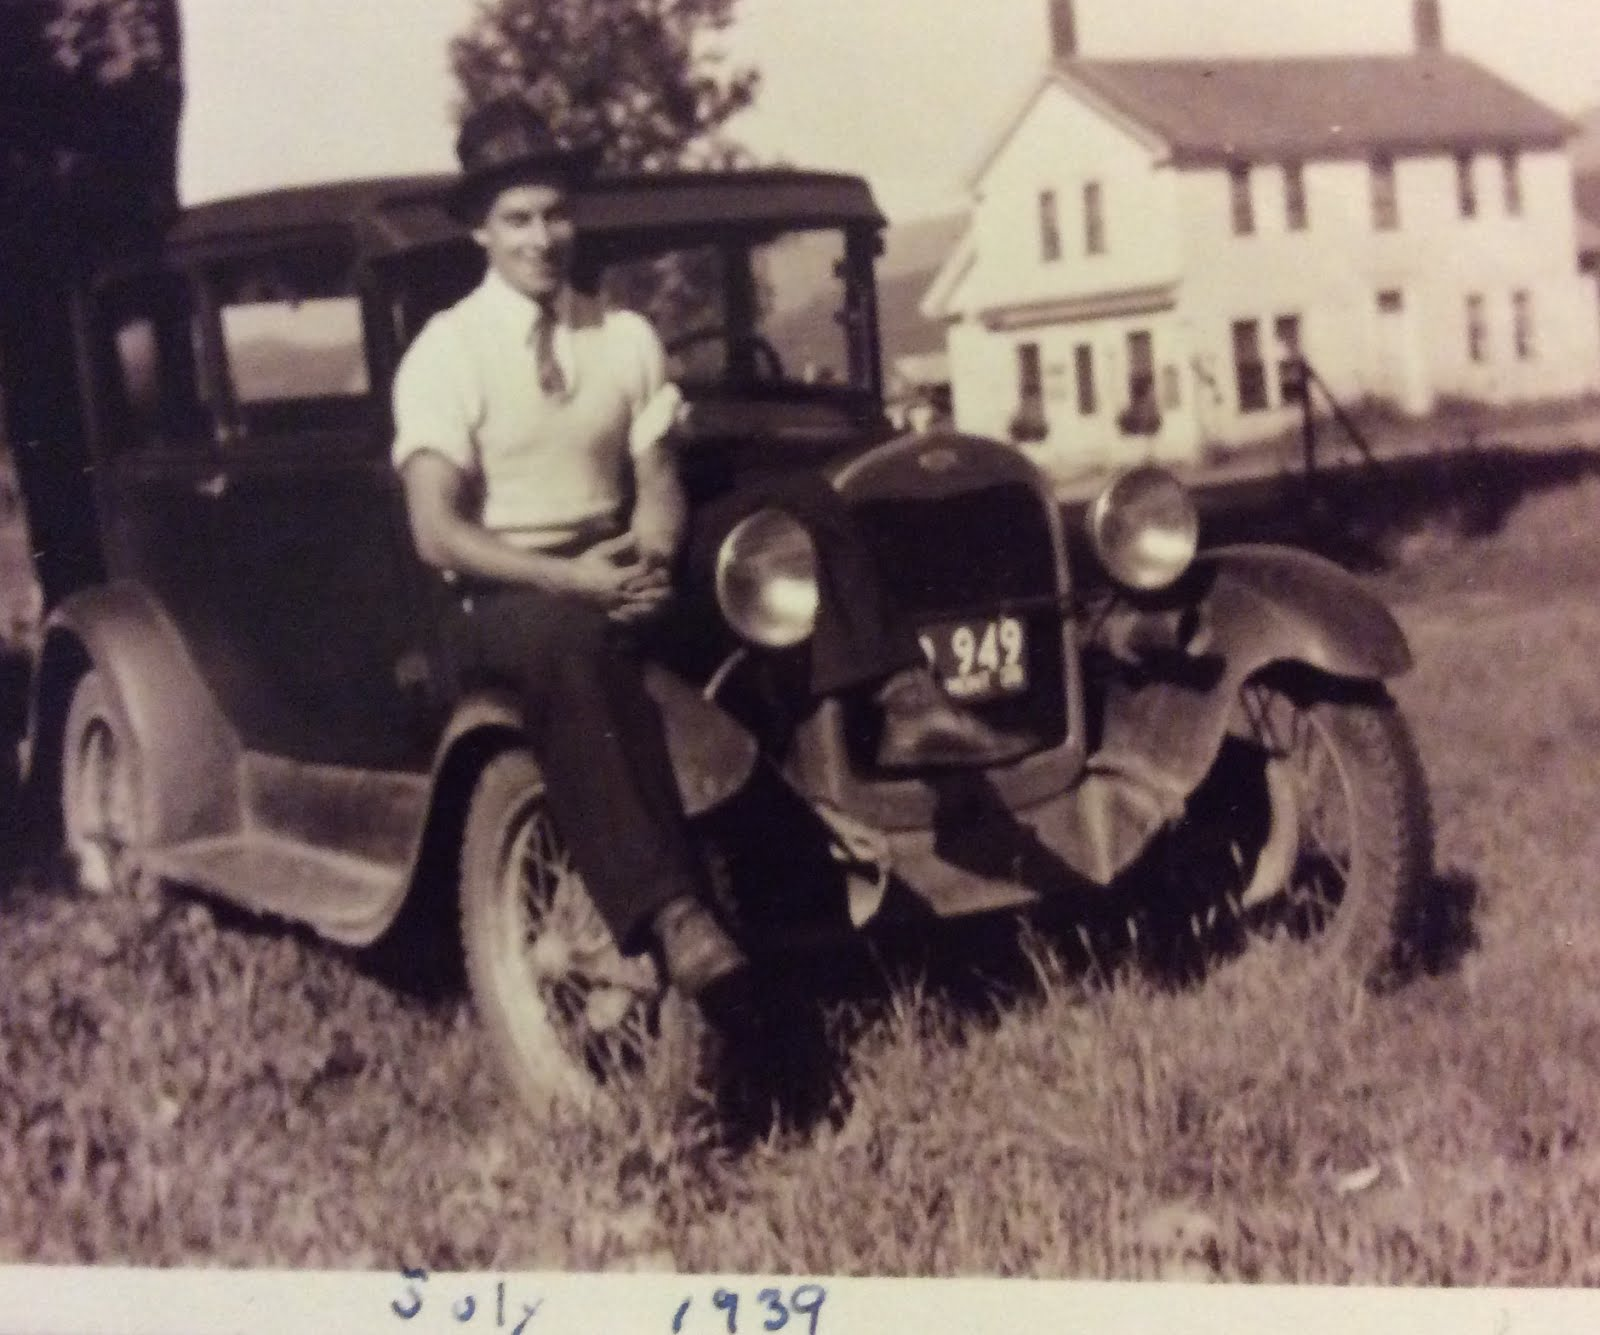 1939, 22 yrs old